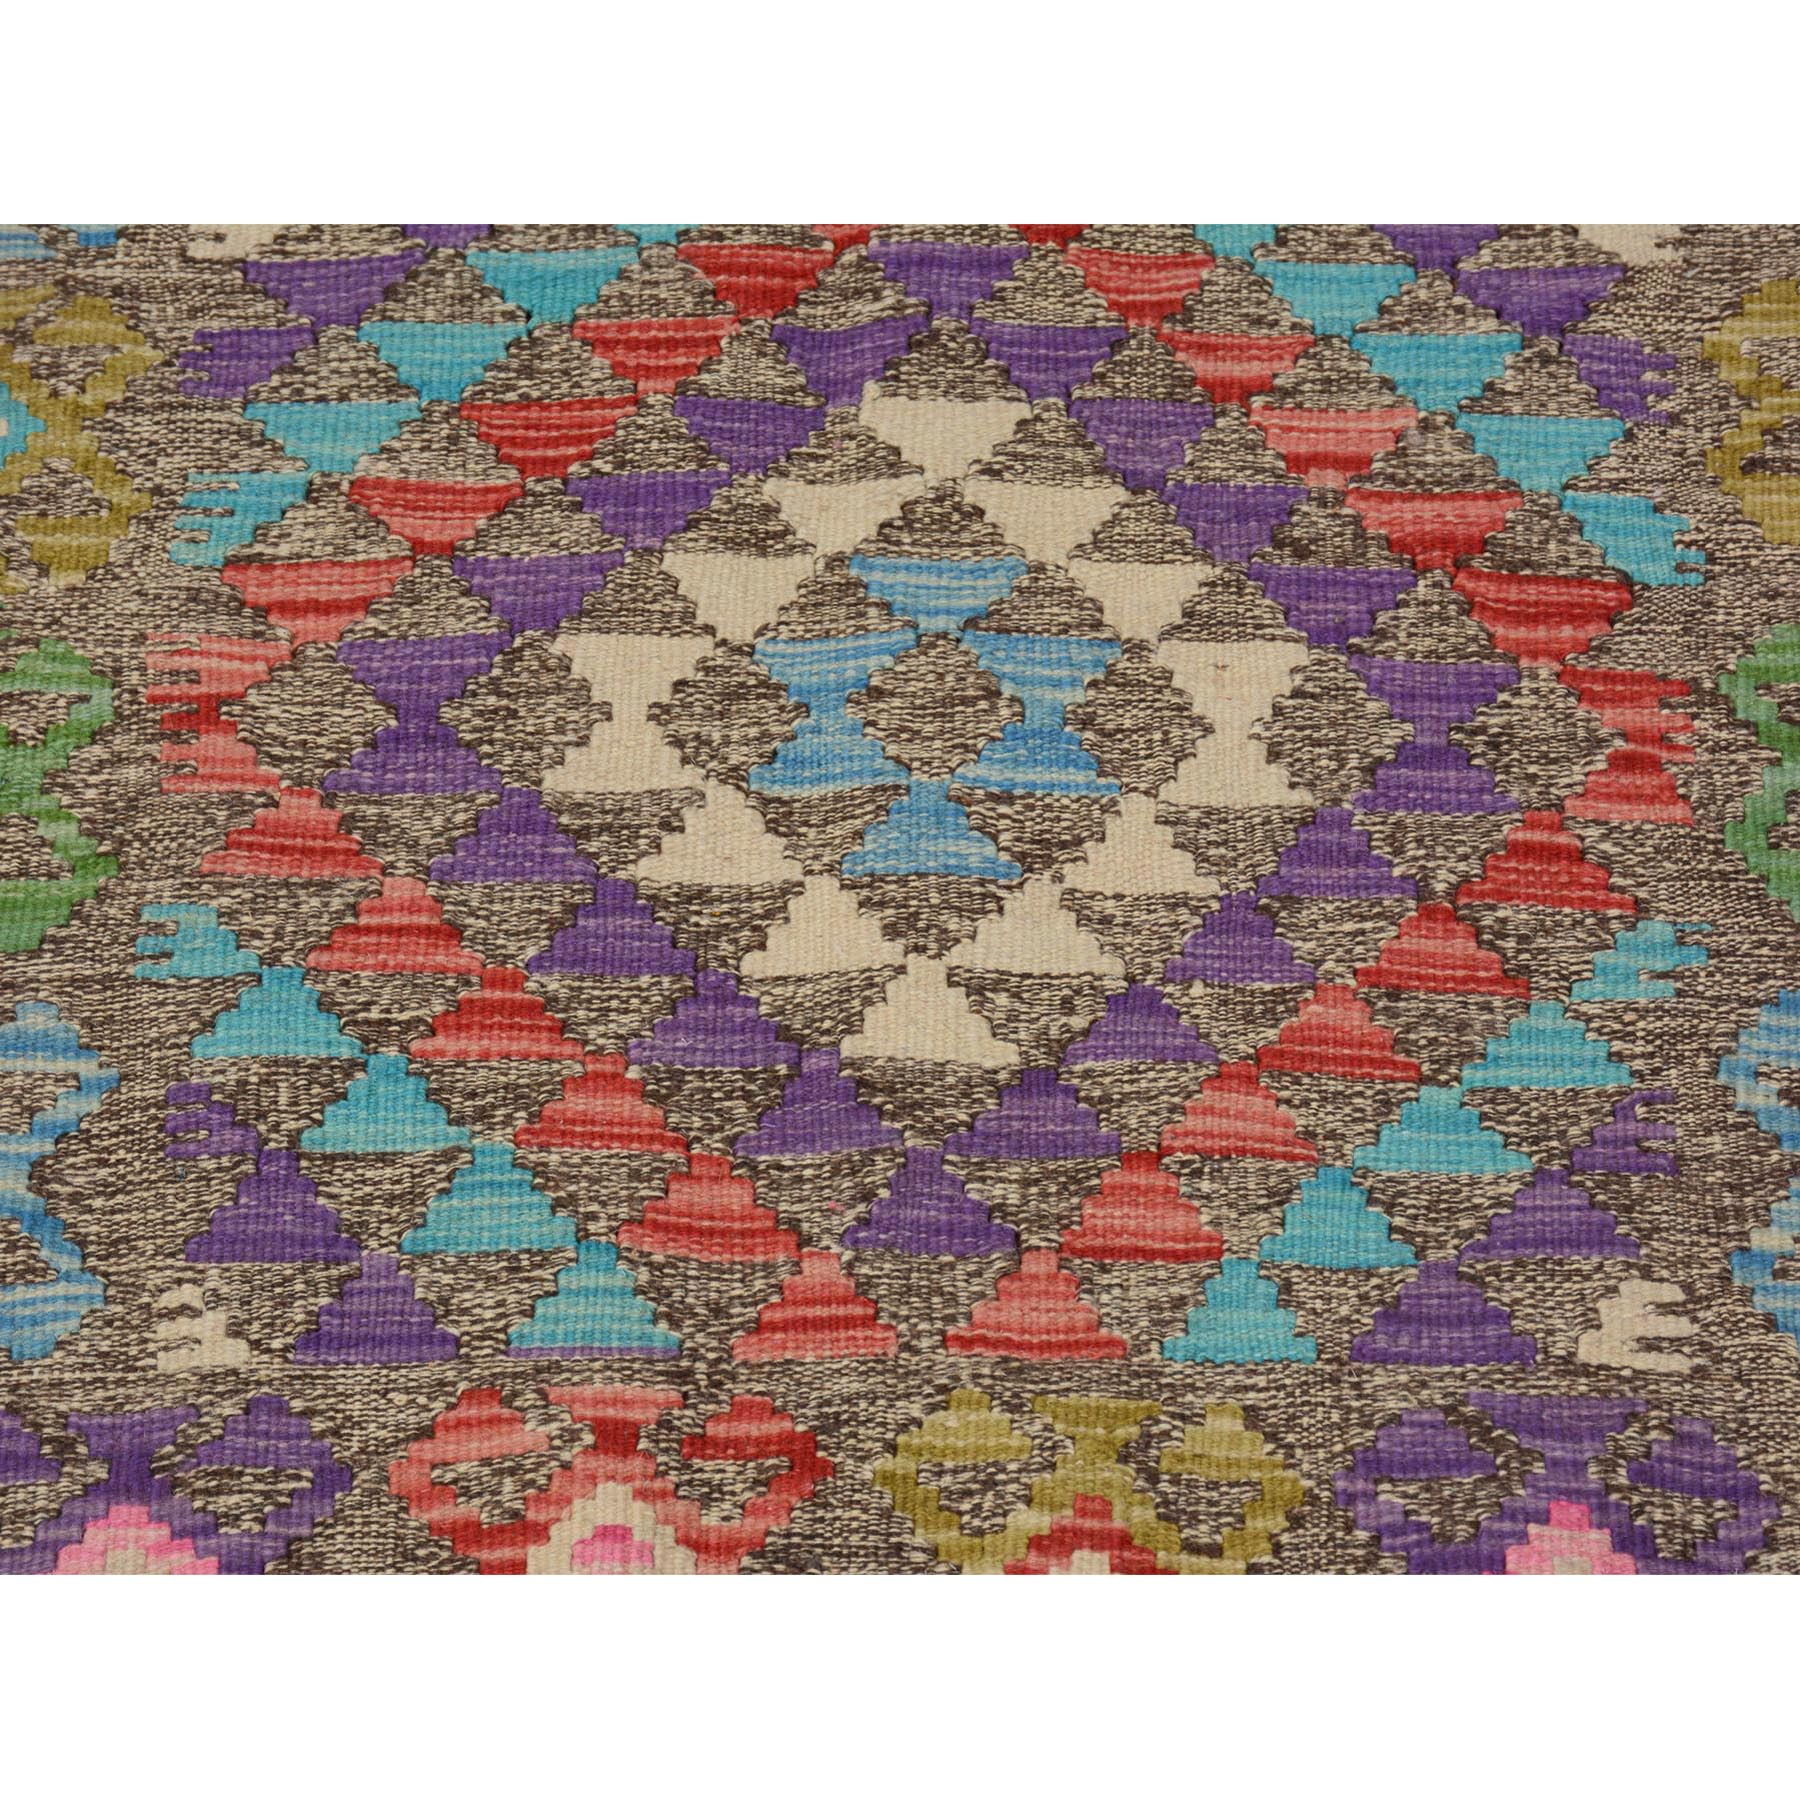 3-x4-3  Colorful Reversible Geometric Design Afghan Kilim Flat Weave Pure Wool Hand Woven Oriental Rug